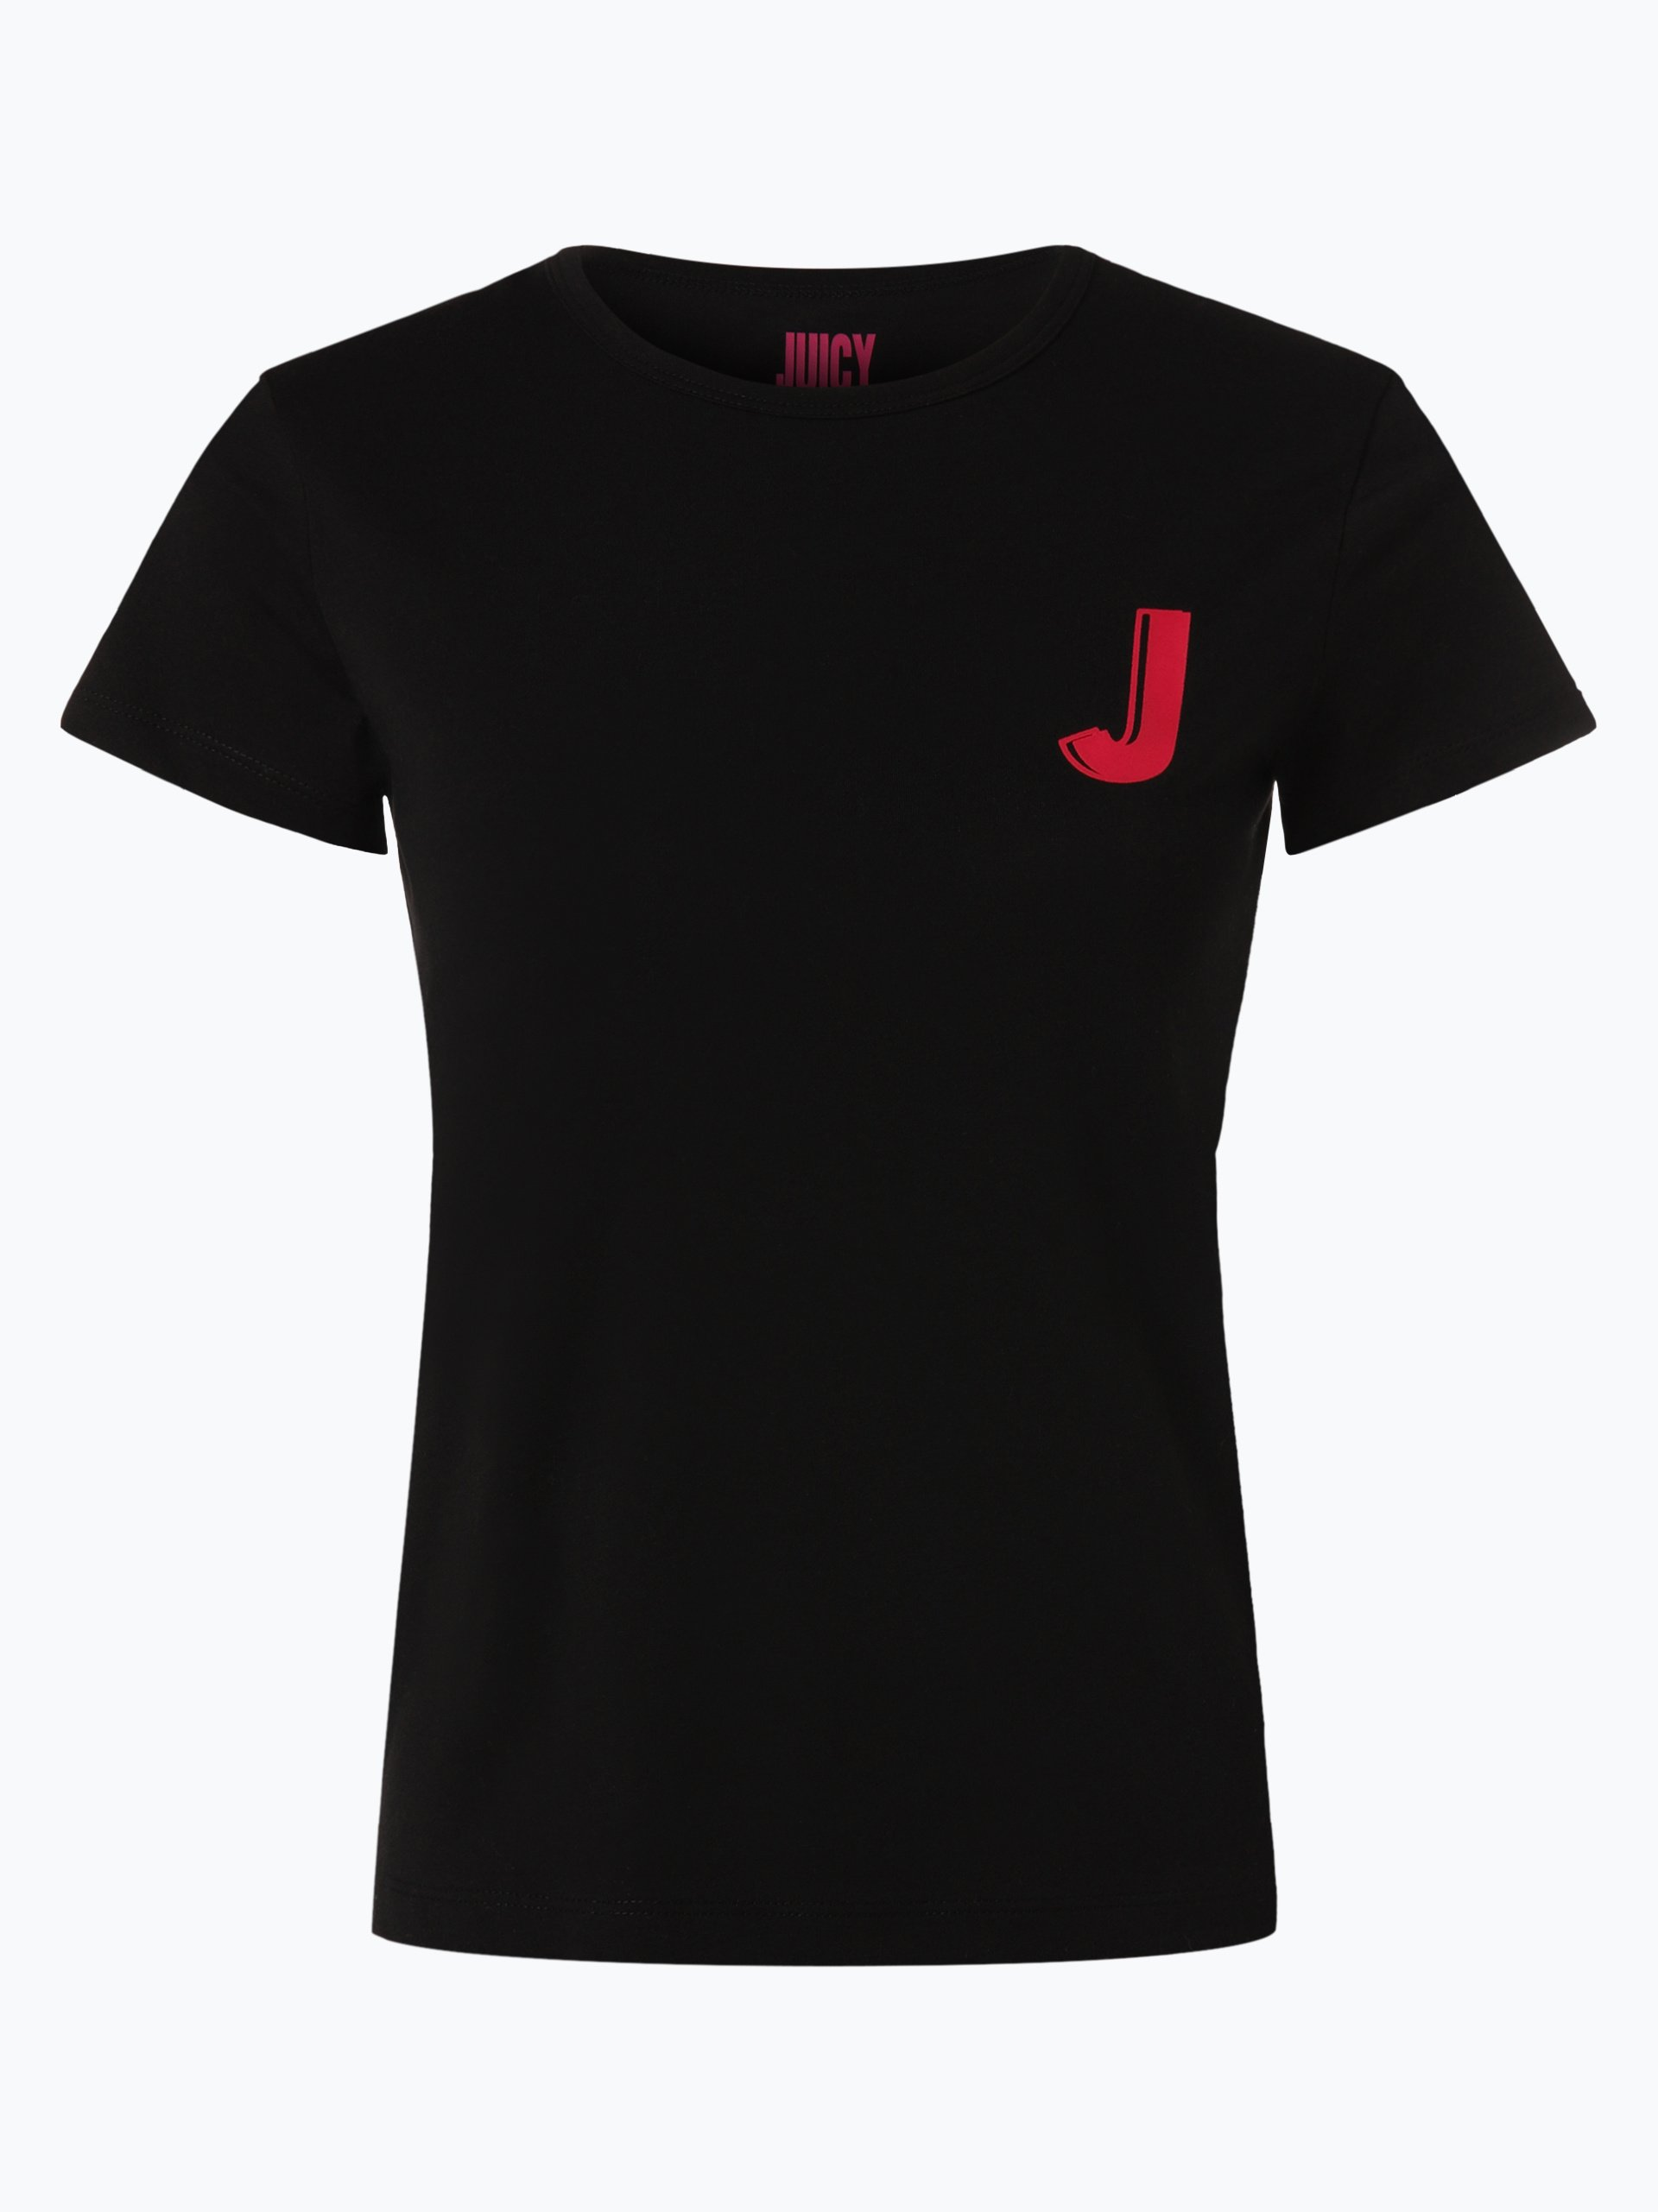 Juicy by Juicy Couture Damen T-Shirt